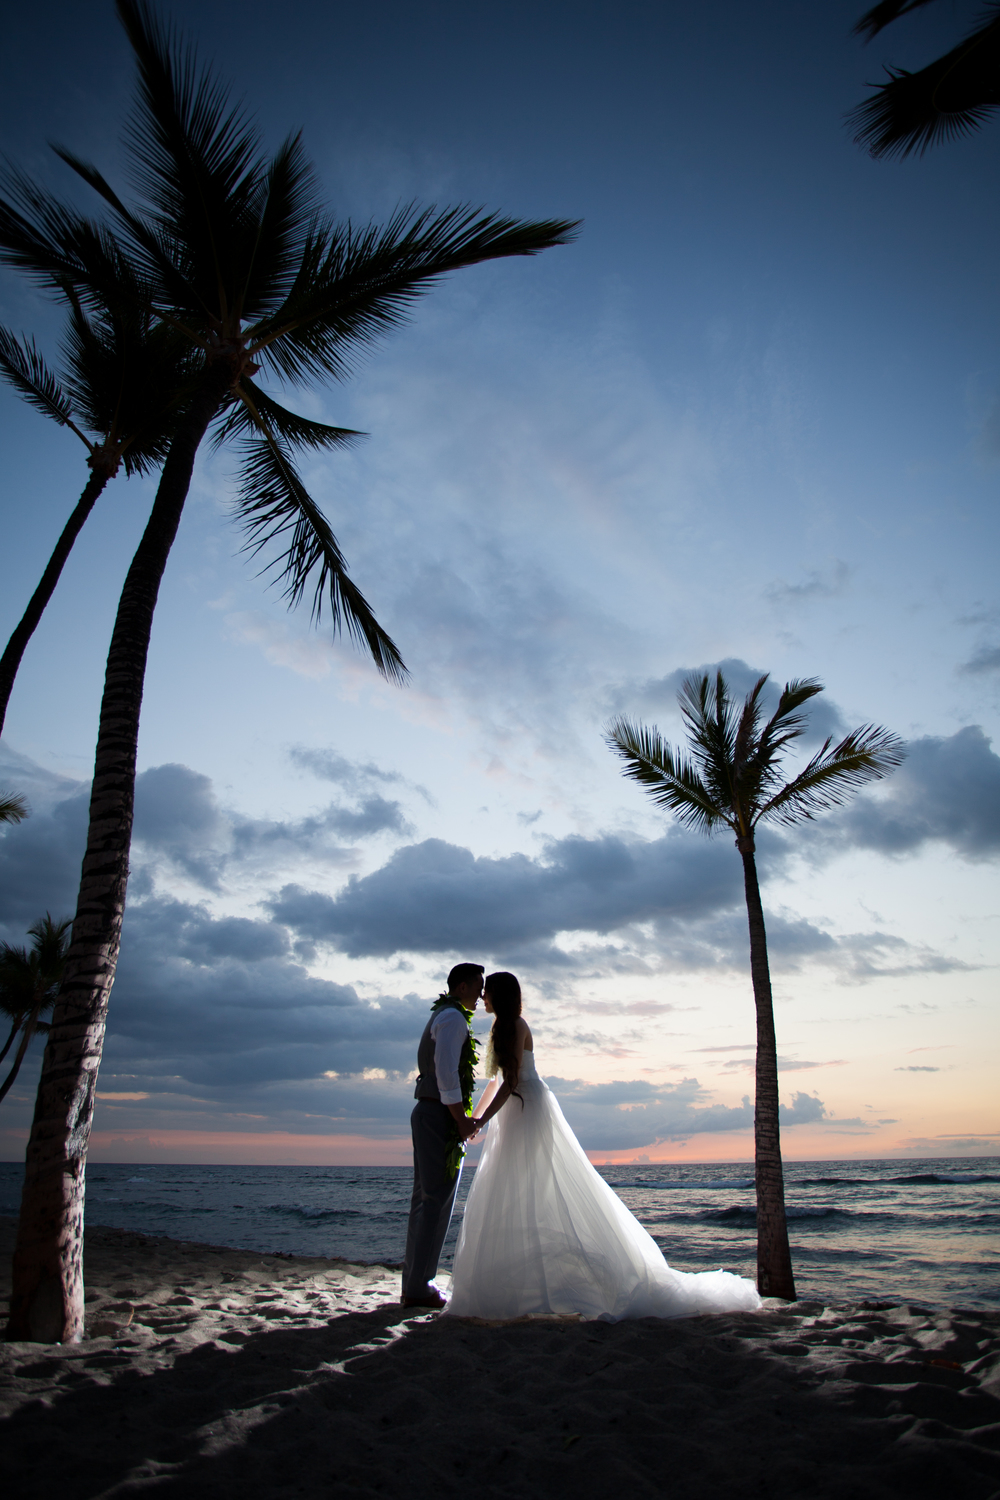 big island hawaii mauna lani resort wedding © kelilina photography 20160523190110-1.jpg